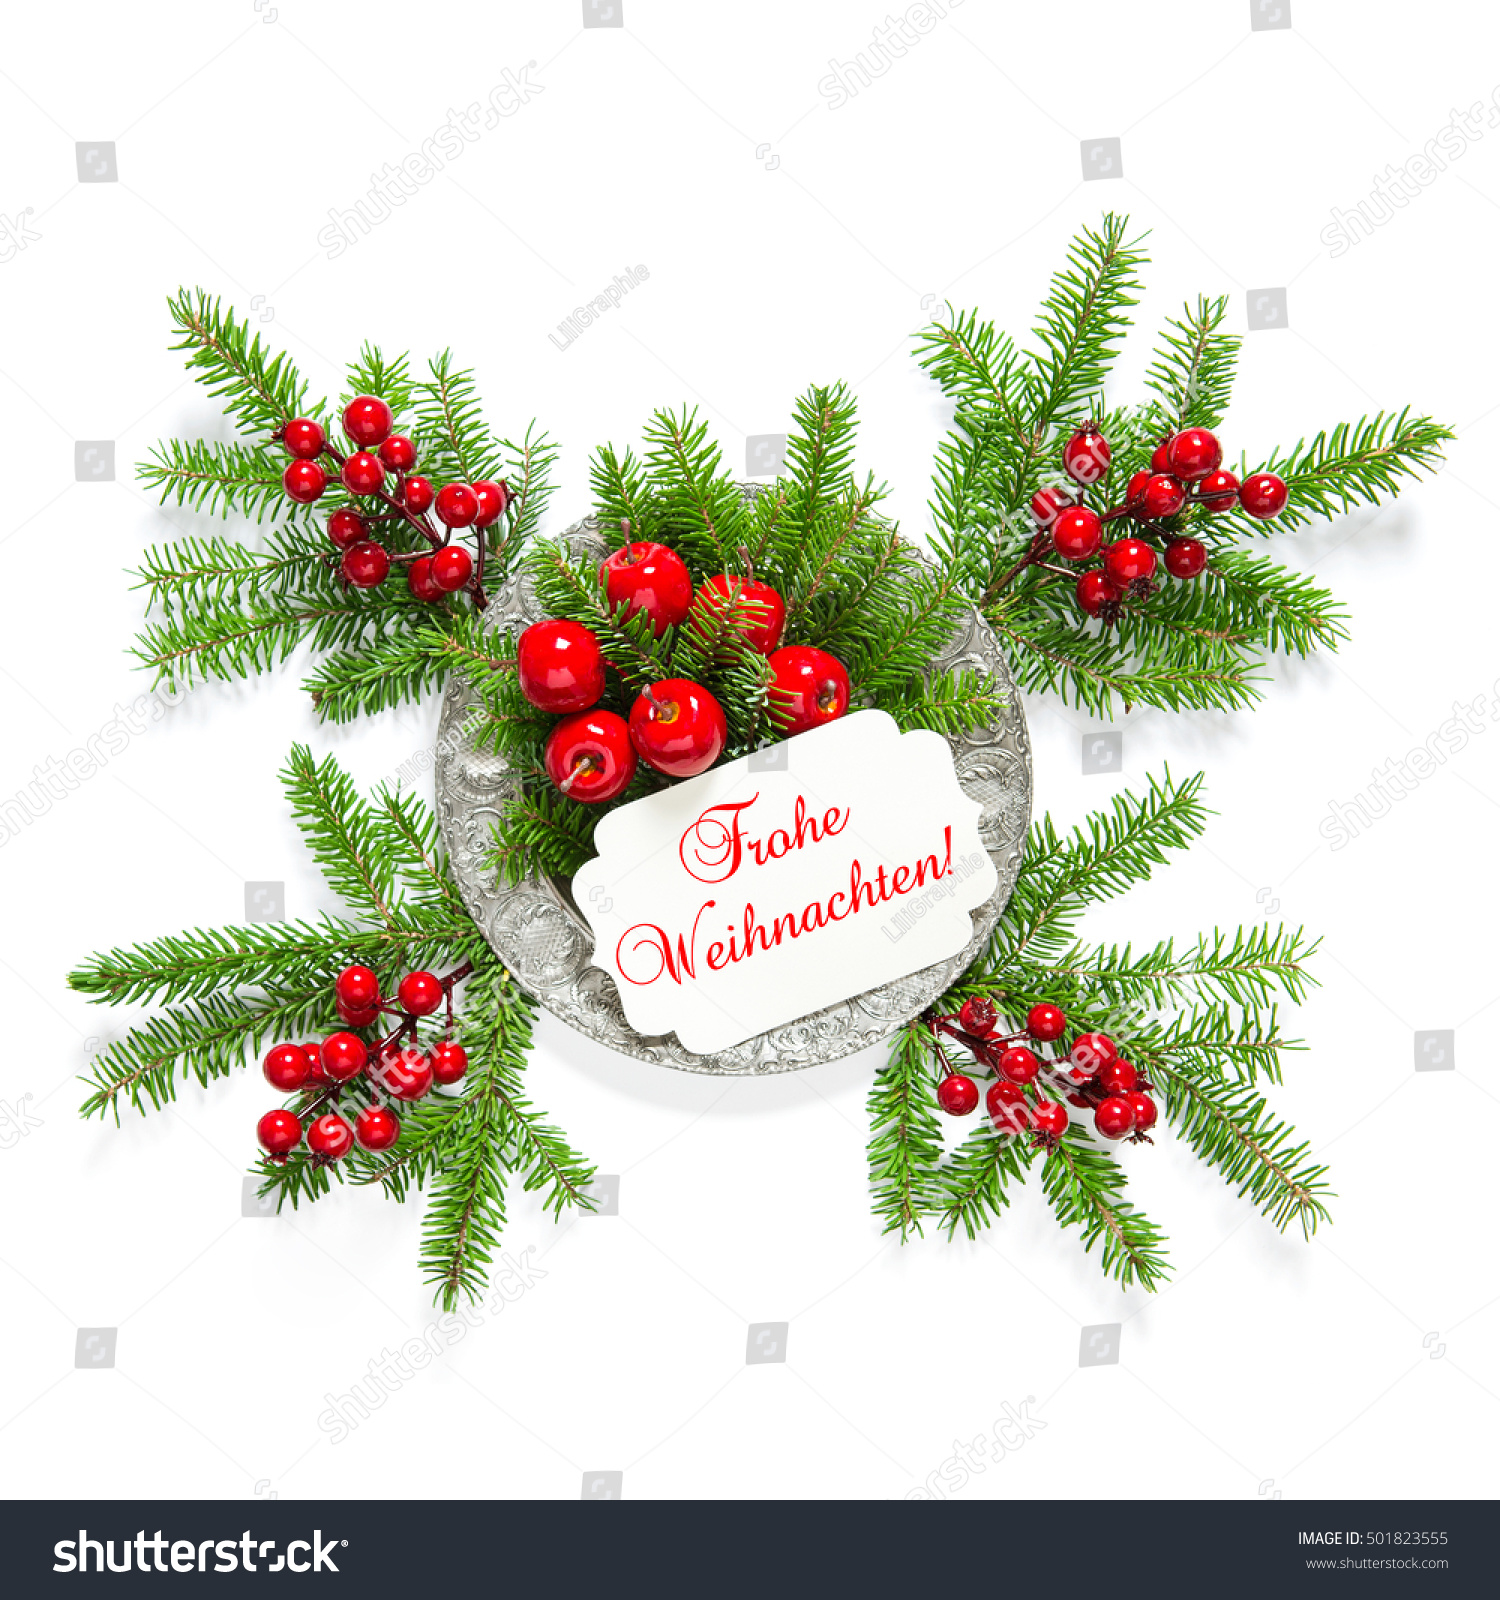 Sample Christmas Tree Decorating Ideas: Christmas Tree Branches With Red Berries And Greetings